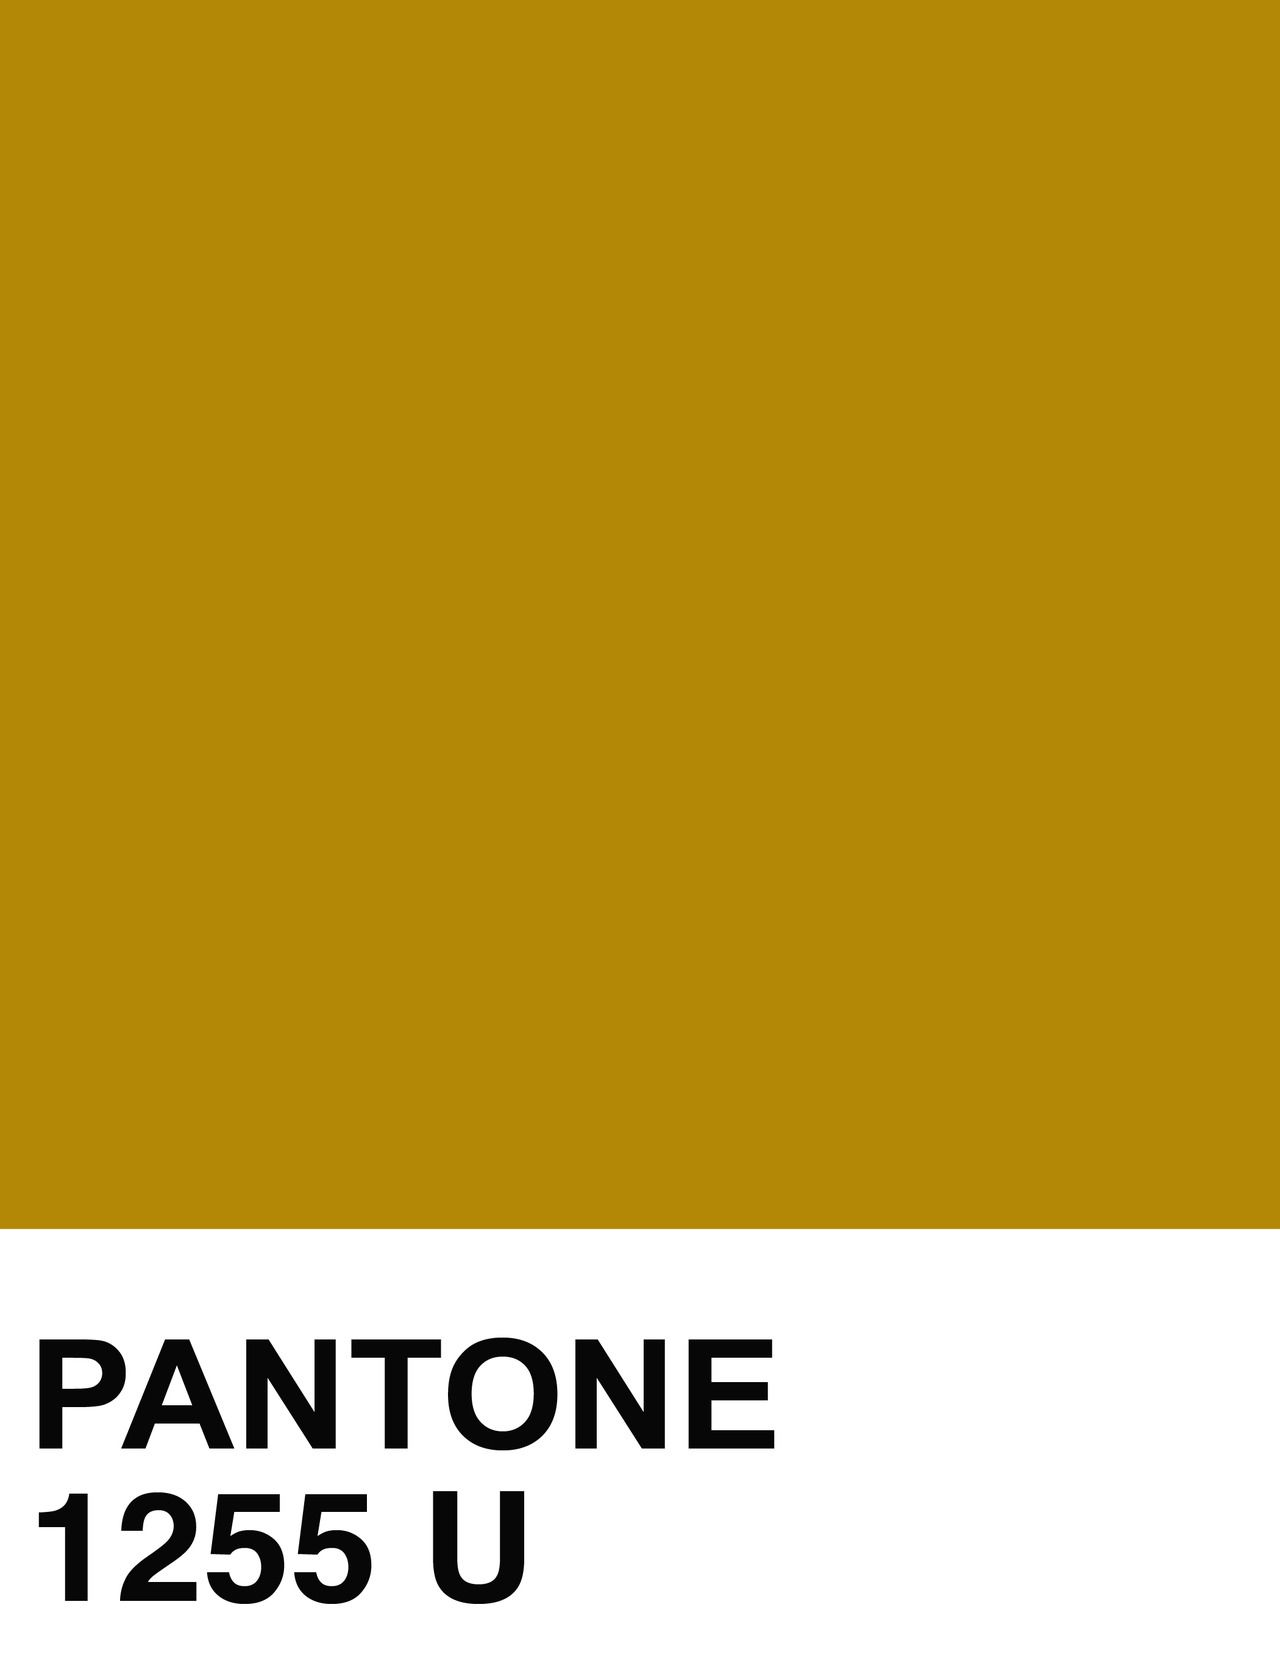 Electrikmuse fall colors design pinterest pantone and electrikmuse fall colors geenschuldenfo Gallery